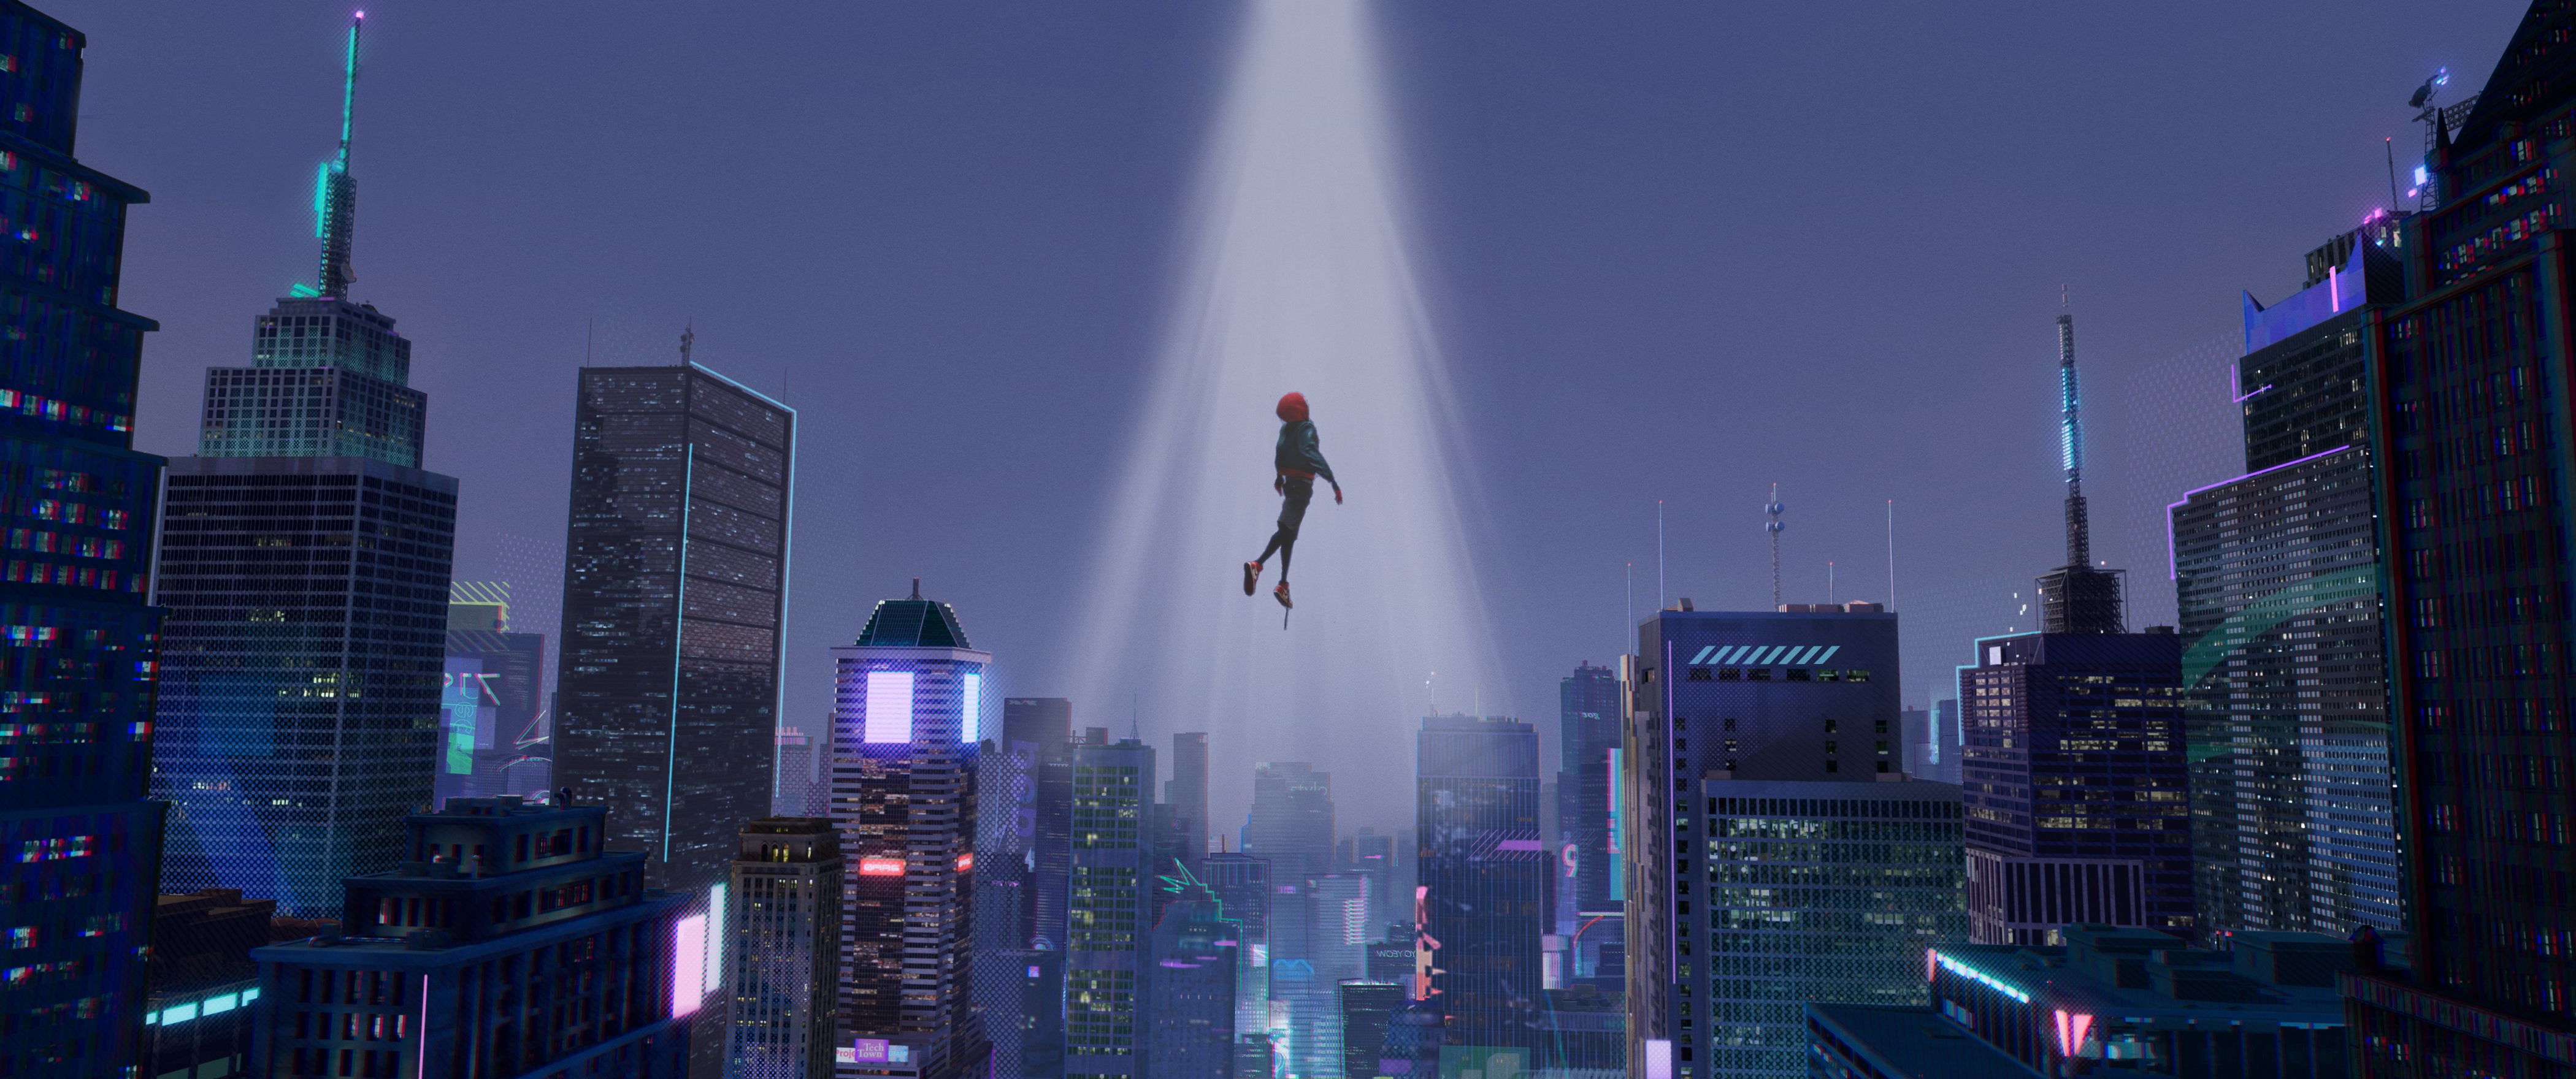 Spider Man Being Abducted By Aliens 4200x1760 Music Indieartist Chicago Spider Verse Wallpaper Hd Wallpaper